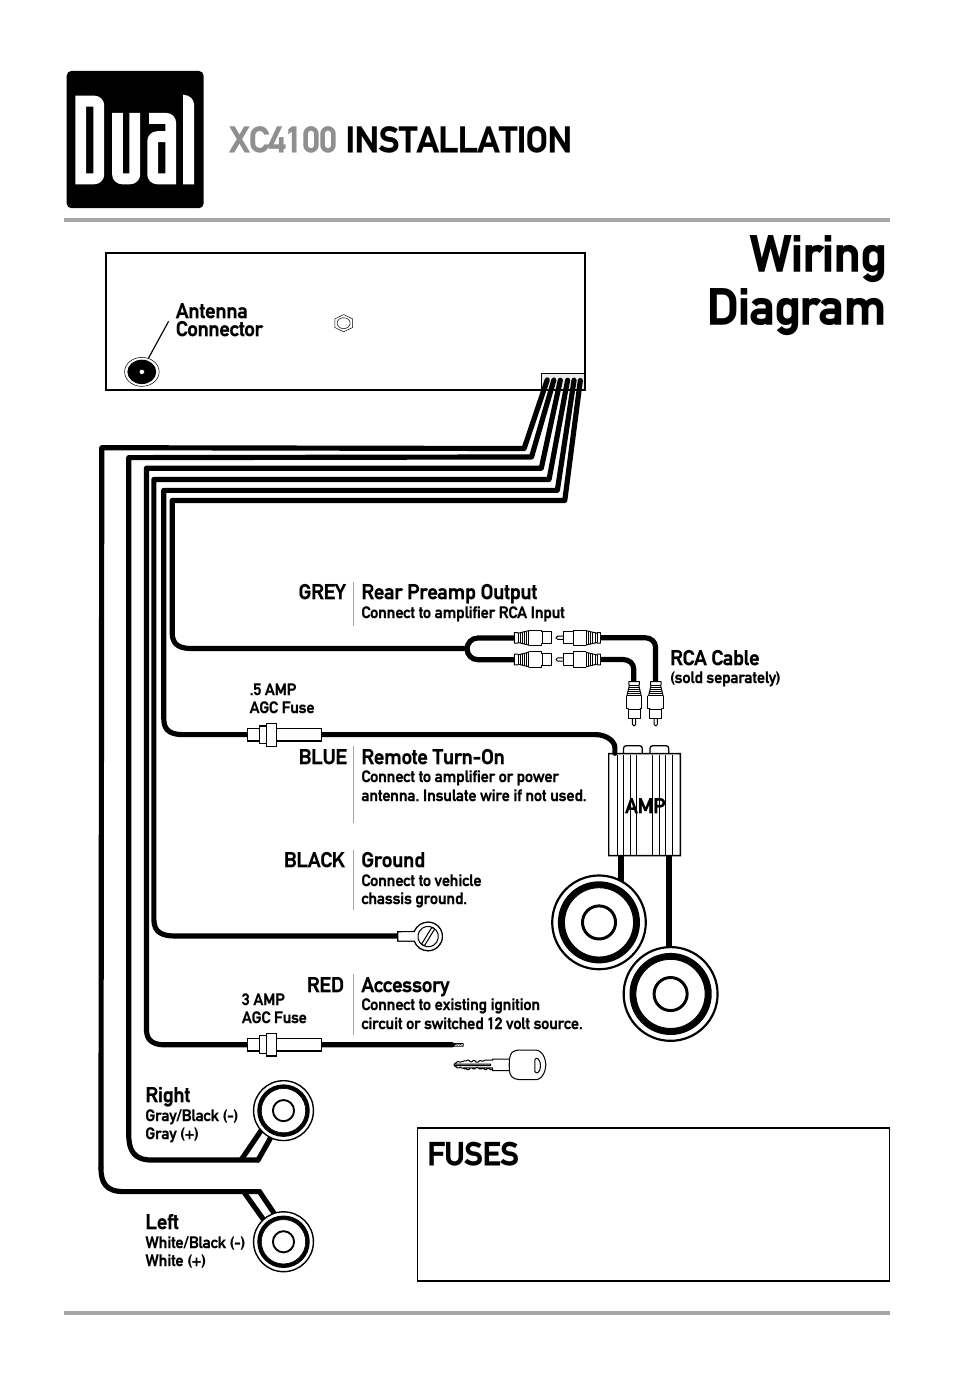 [DIAGRAM] Xtenzi Wire Harness Speaker Plug For Dual